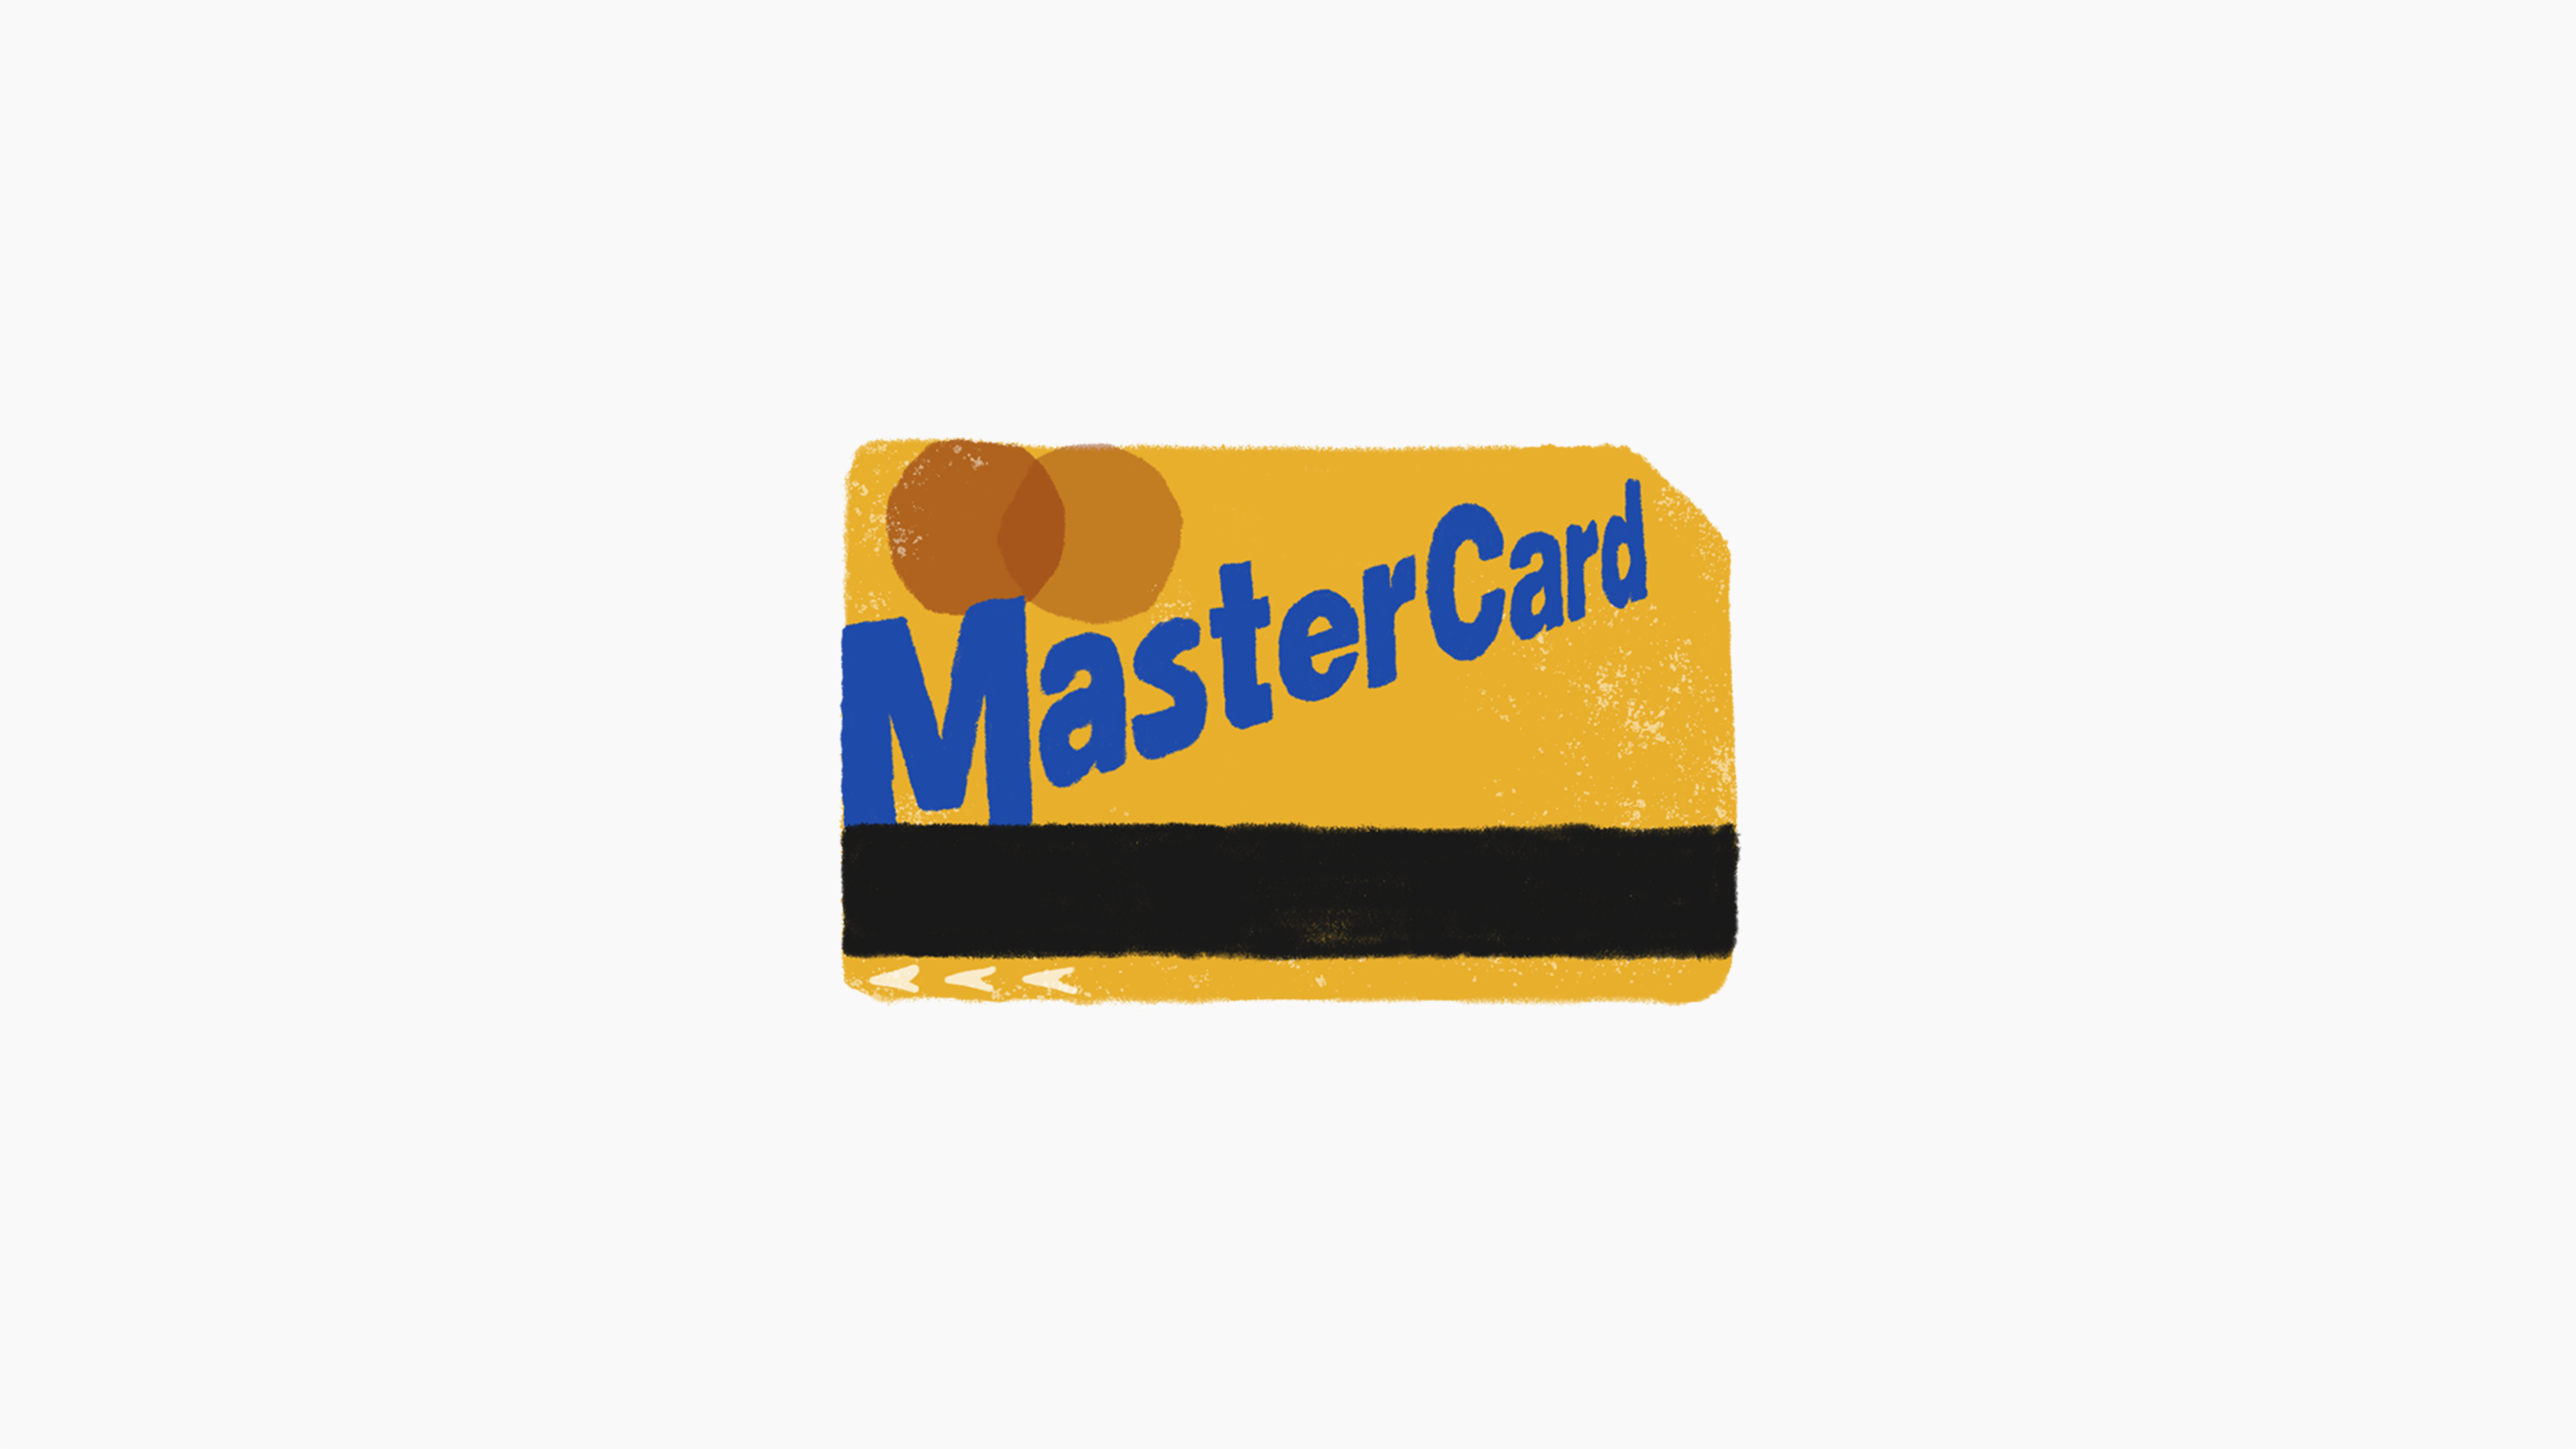 """An illustration of a NYC MTA Metrocard that says """"Mastercard"""" instead."""